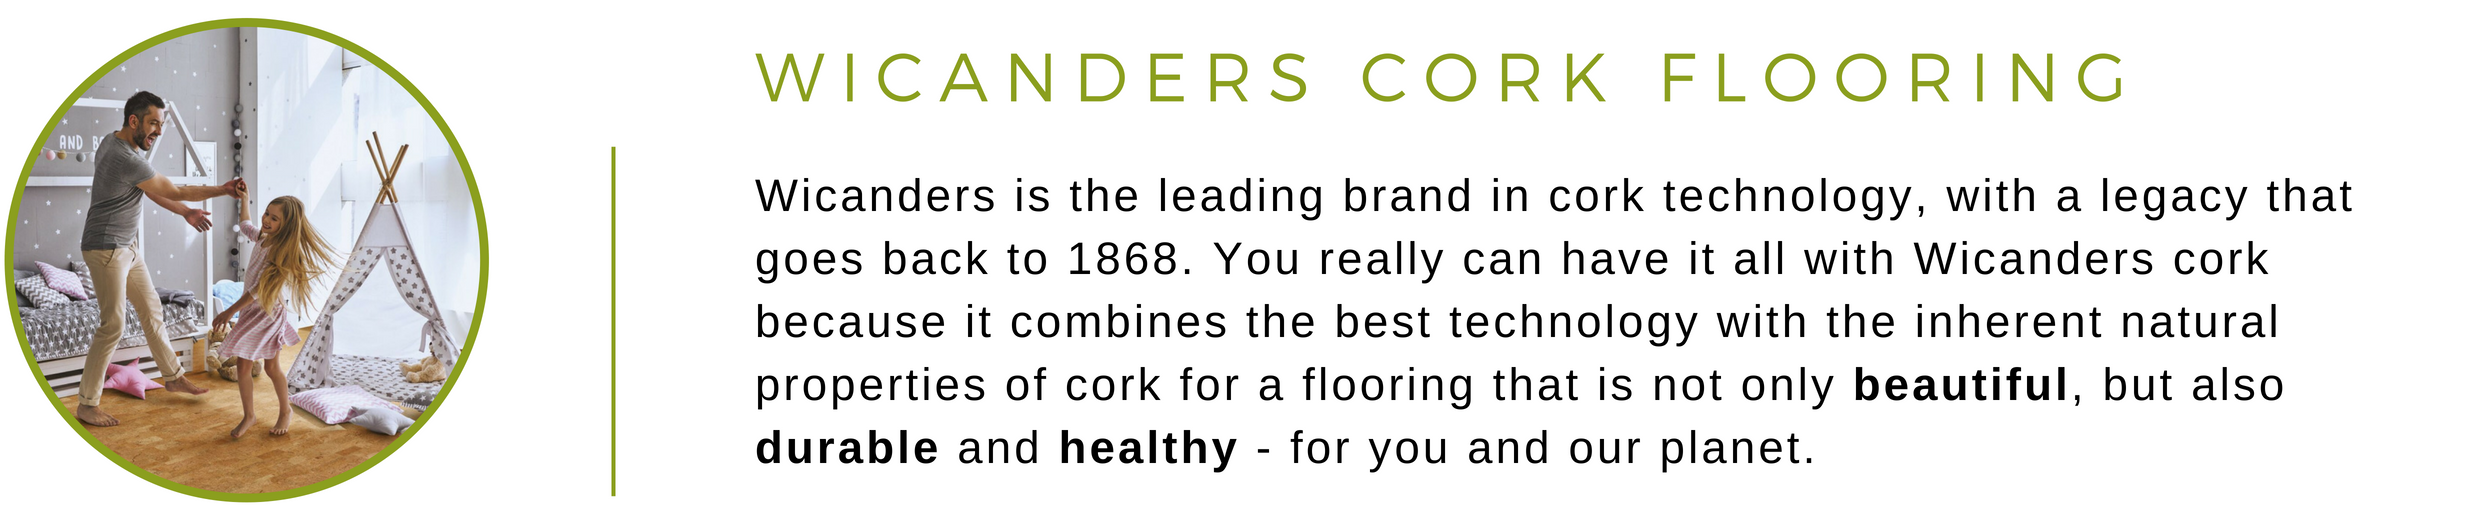 Wicanders Cork Flooring at Greenhome Solutions | Wicanders is the leading brand in cork technology, with a legacy that goes back to 1868. You really can have it all with Wicanders cork because it combines the best cork technology with the inherent natural properties of cork for a flooring that is not only beautiful, but also durable and healthy - for you and the planet.